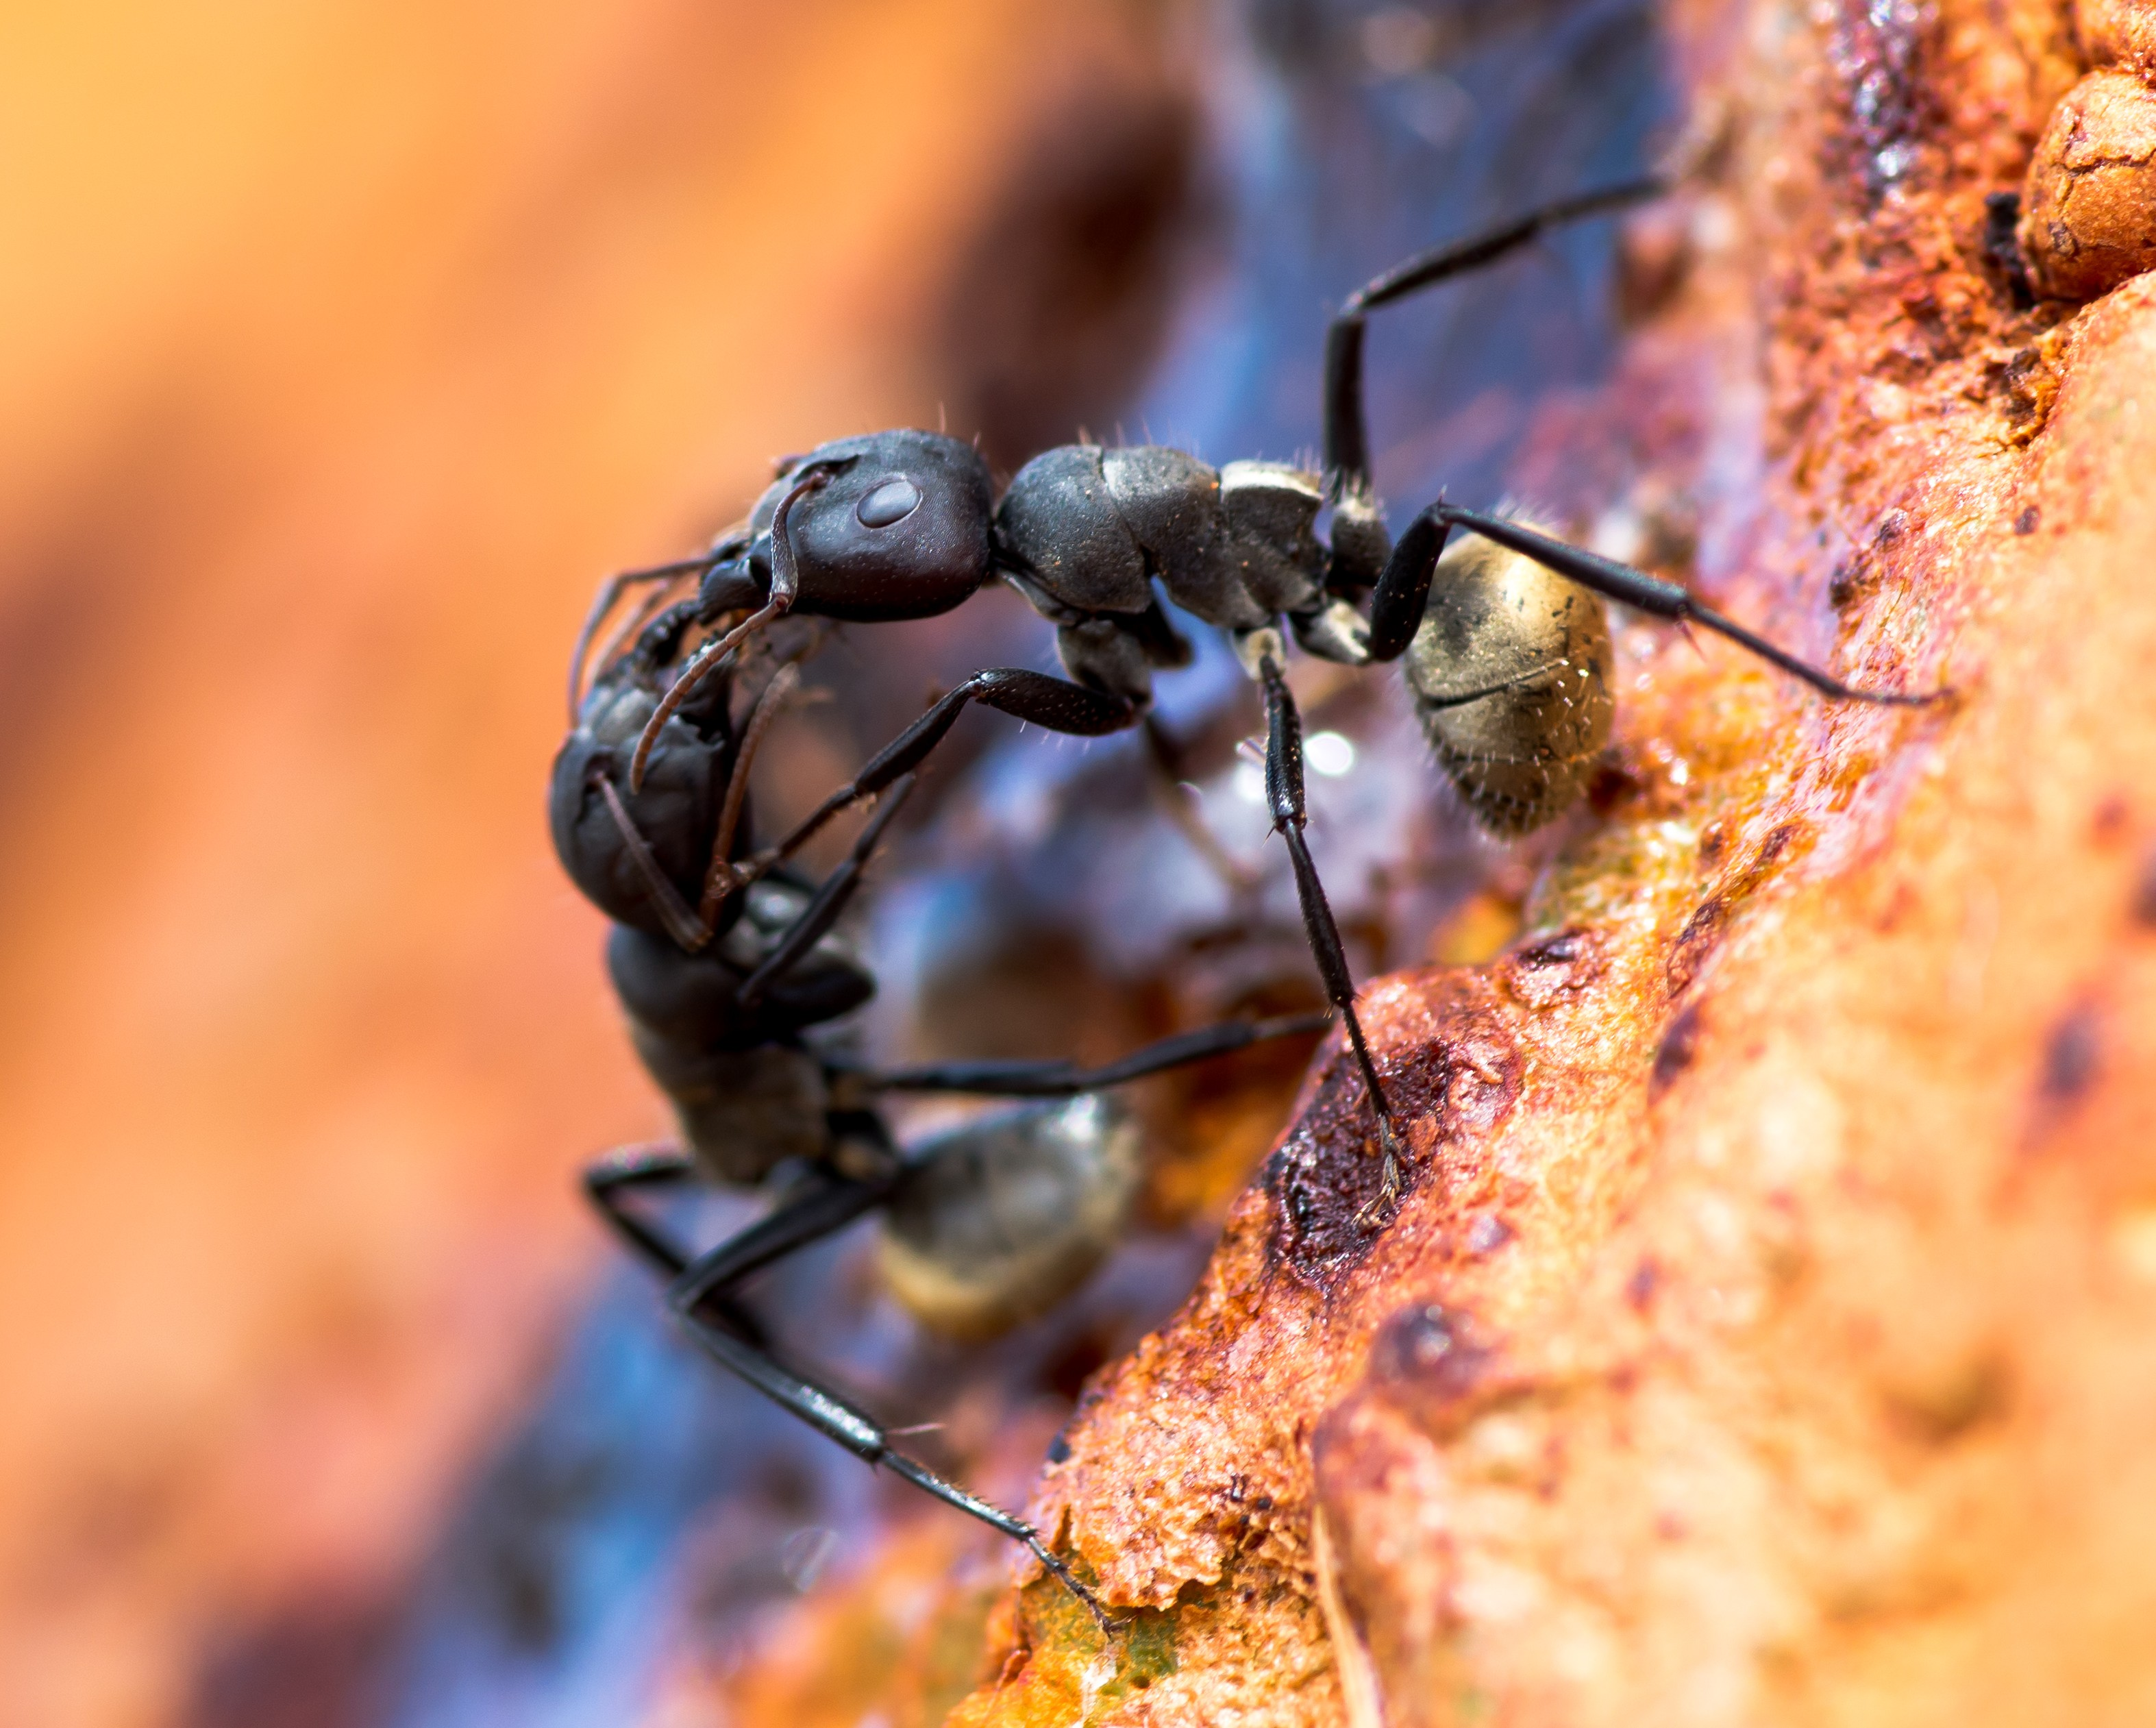 Two Camponotus sericeus workers communicating through touch and pheromones